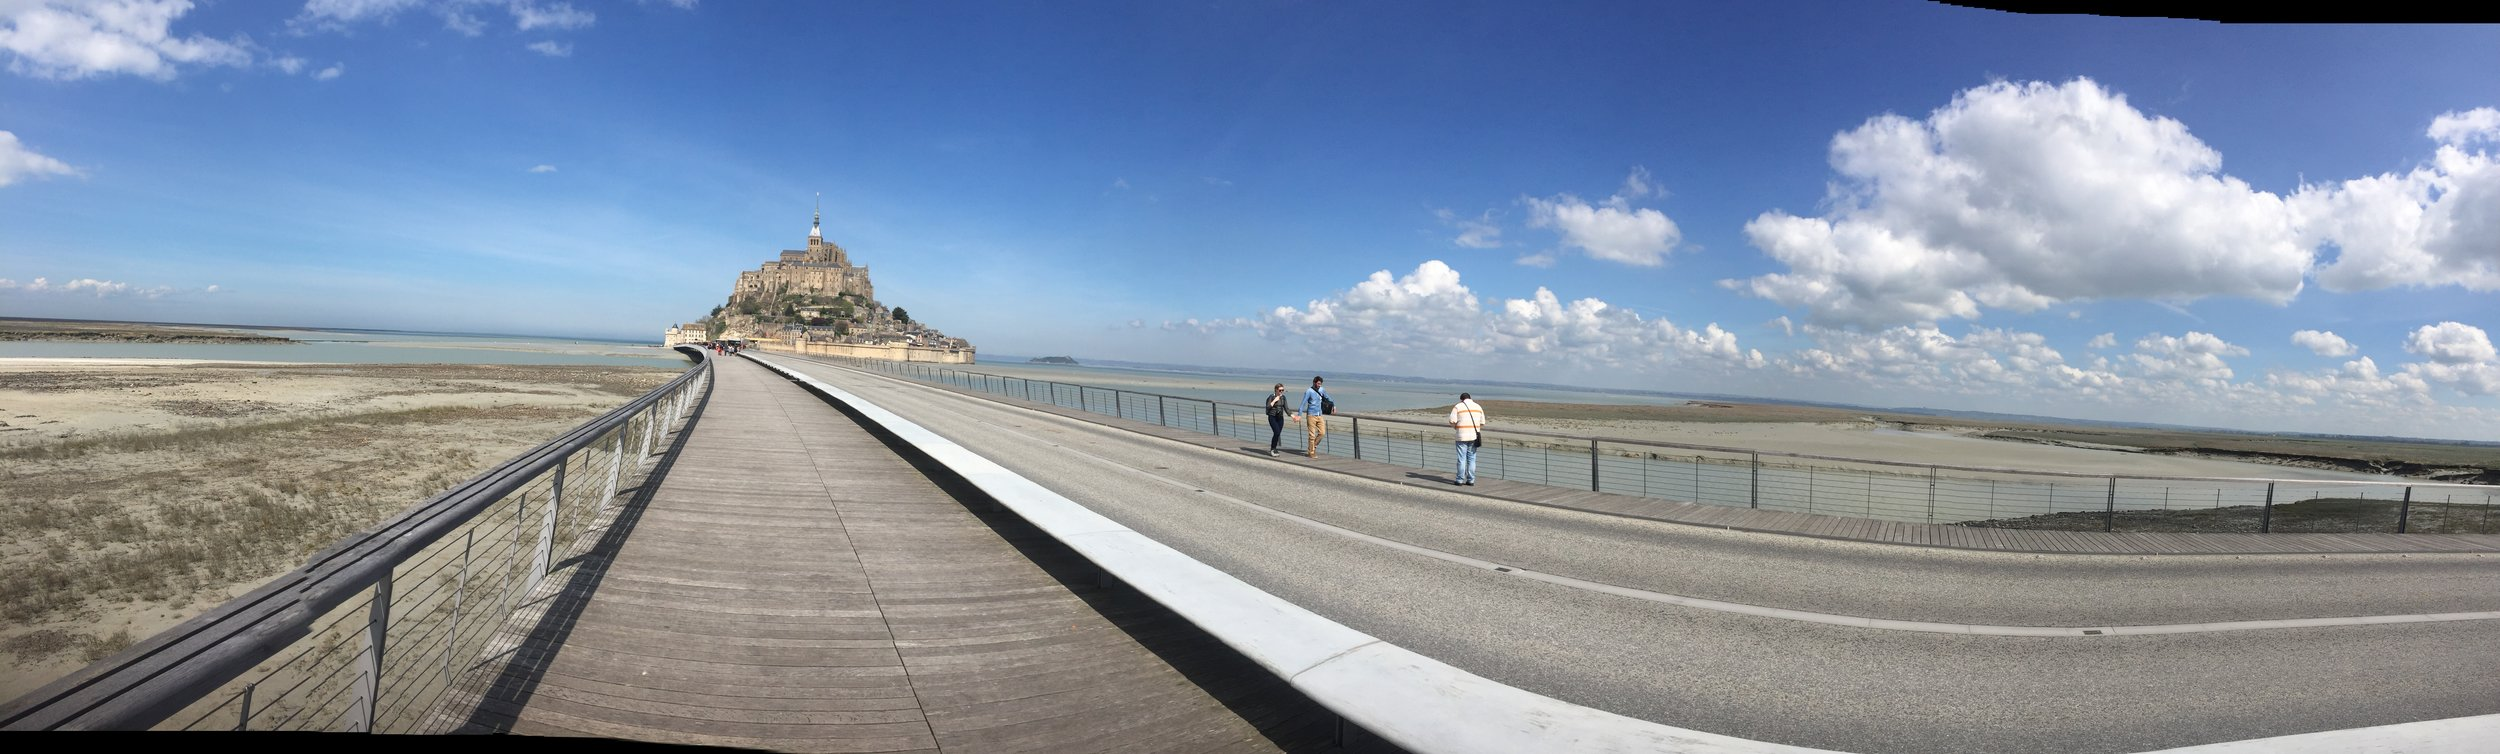 Making my way to Mont Saint Michel, great day for a nice long walk!